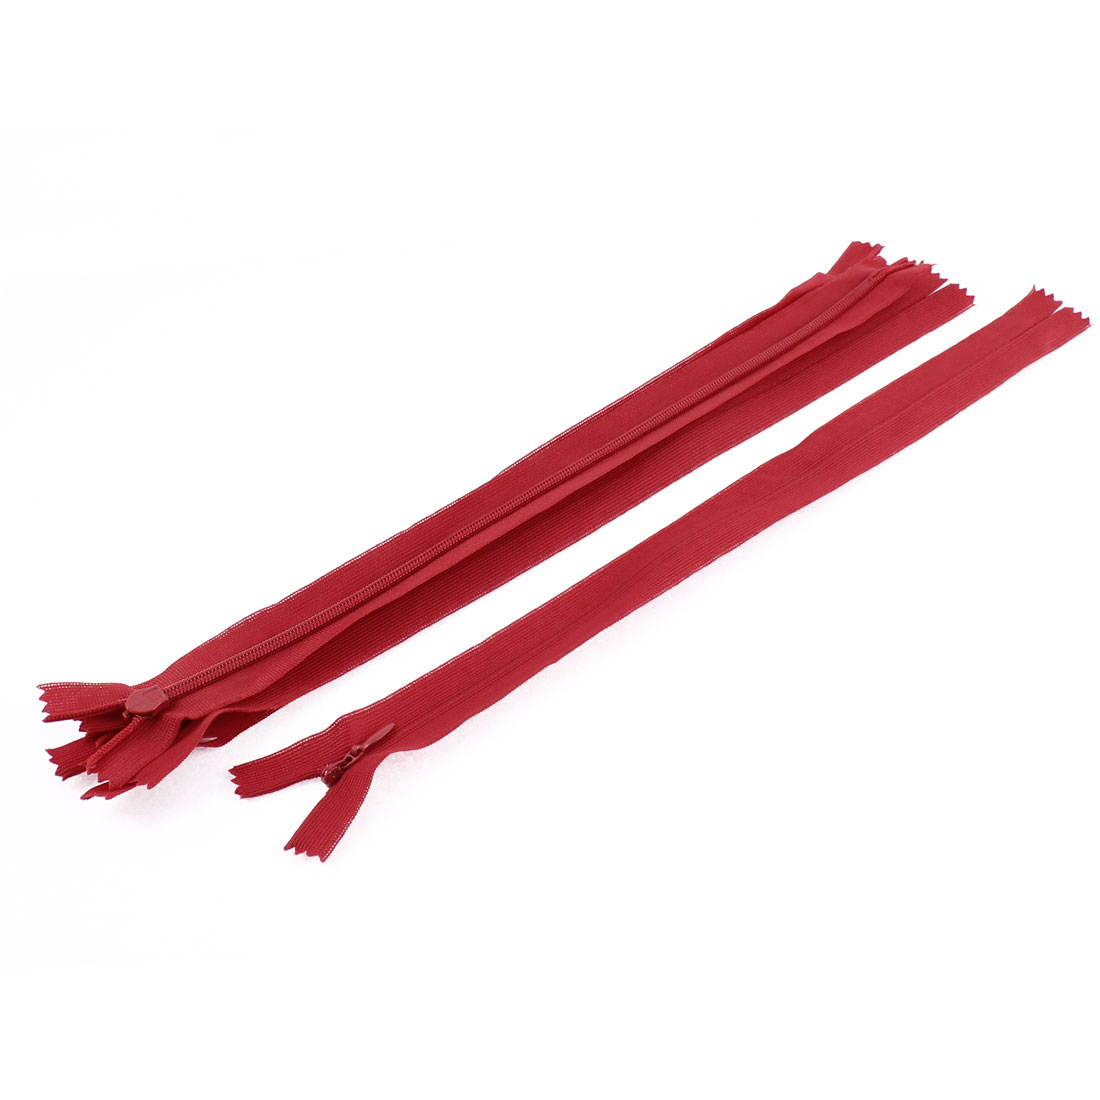 5 Pcs 12 Inch Long Red Nylon DIY Zippers Zips for Clothes Pants